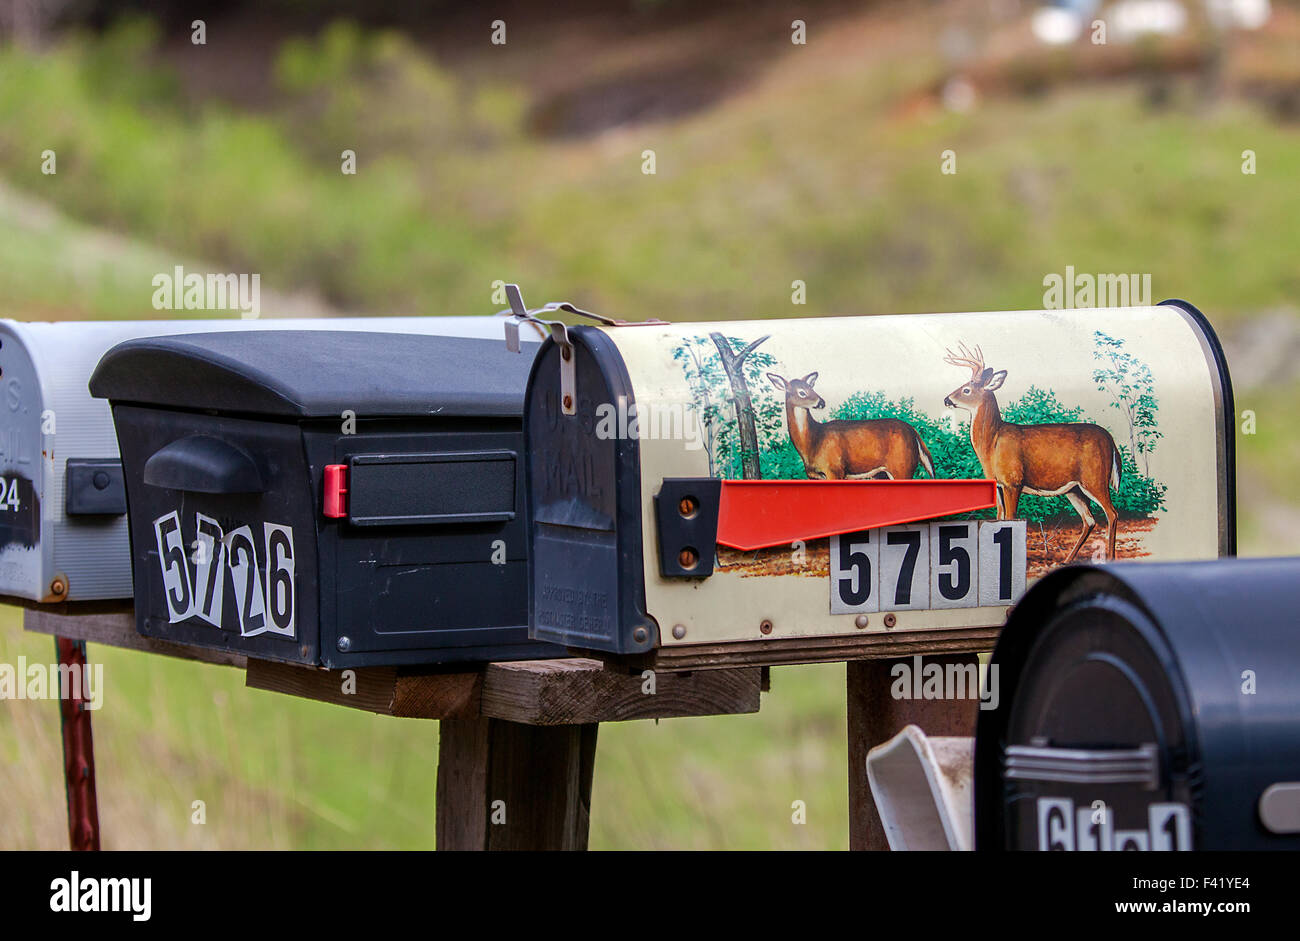 Letterbox system in California Stock Photo